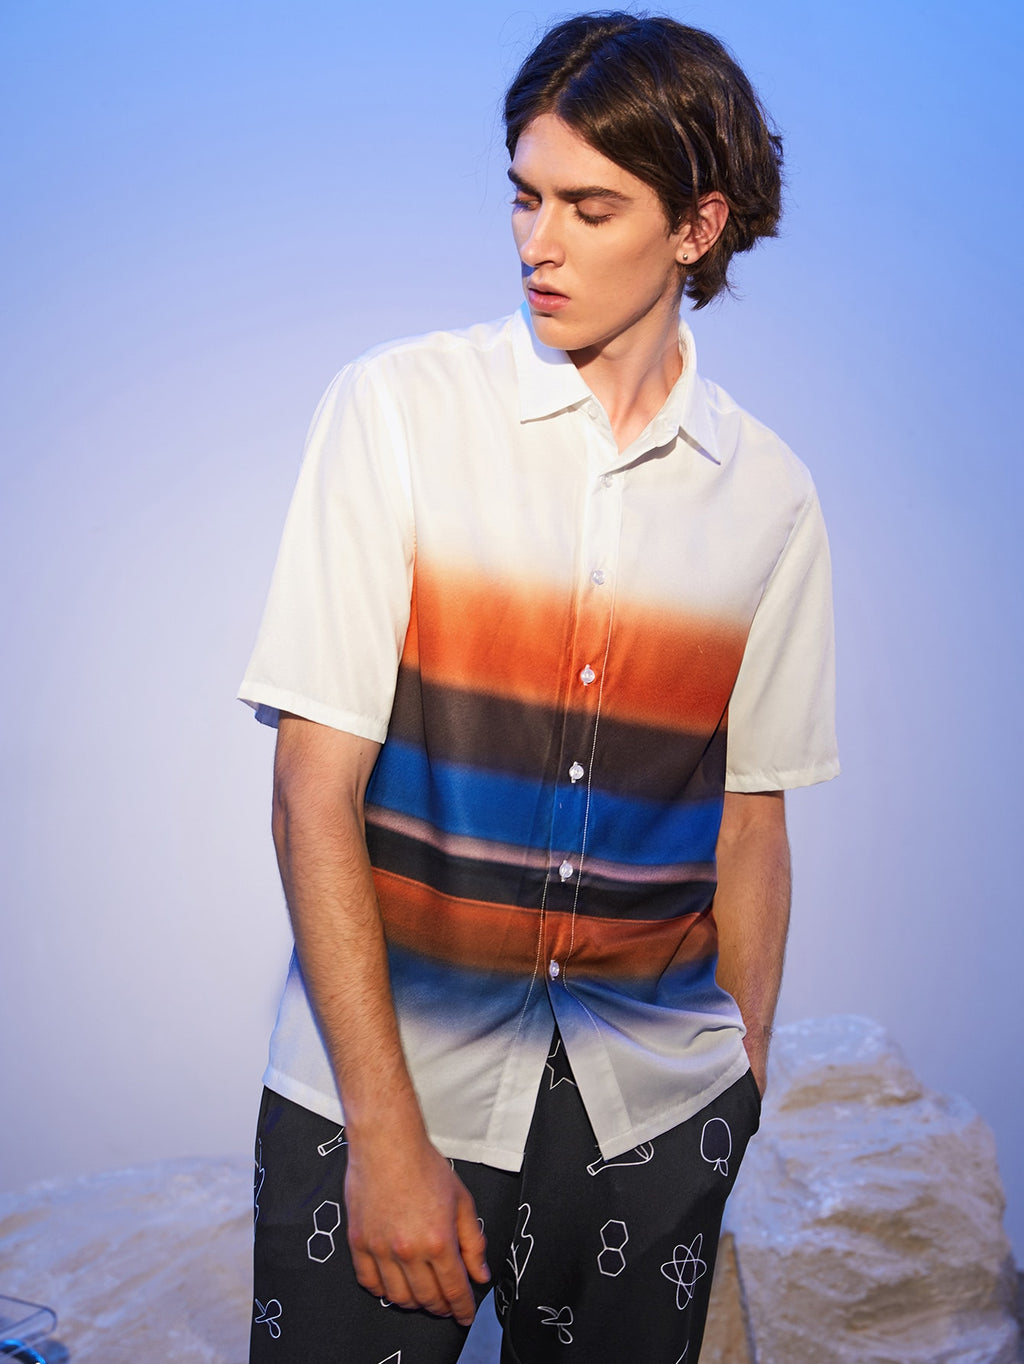 Colorblock Shirt - This Is For Him